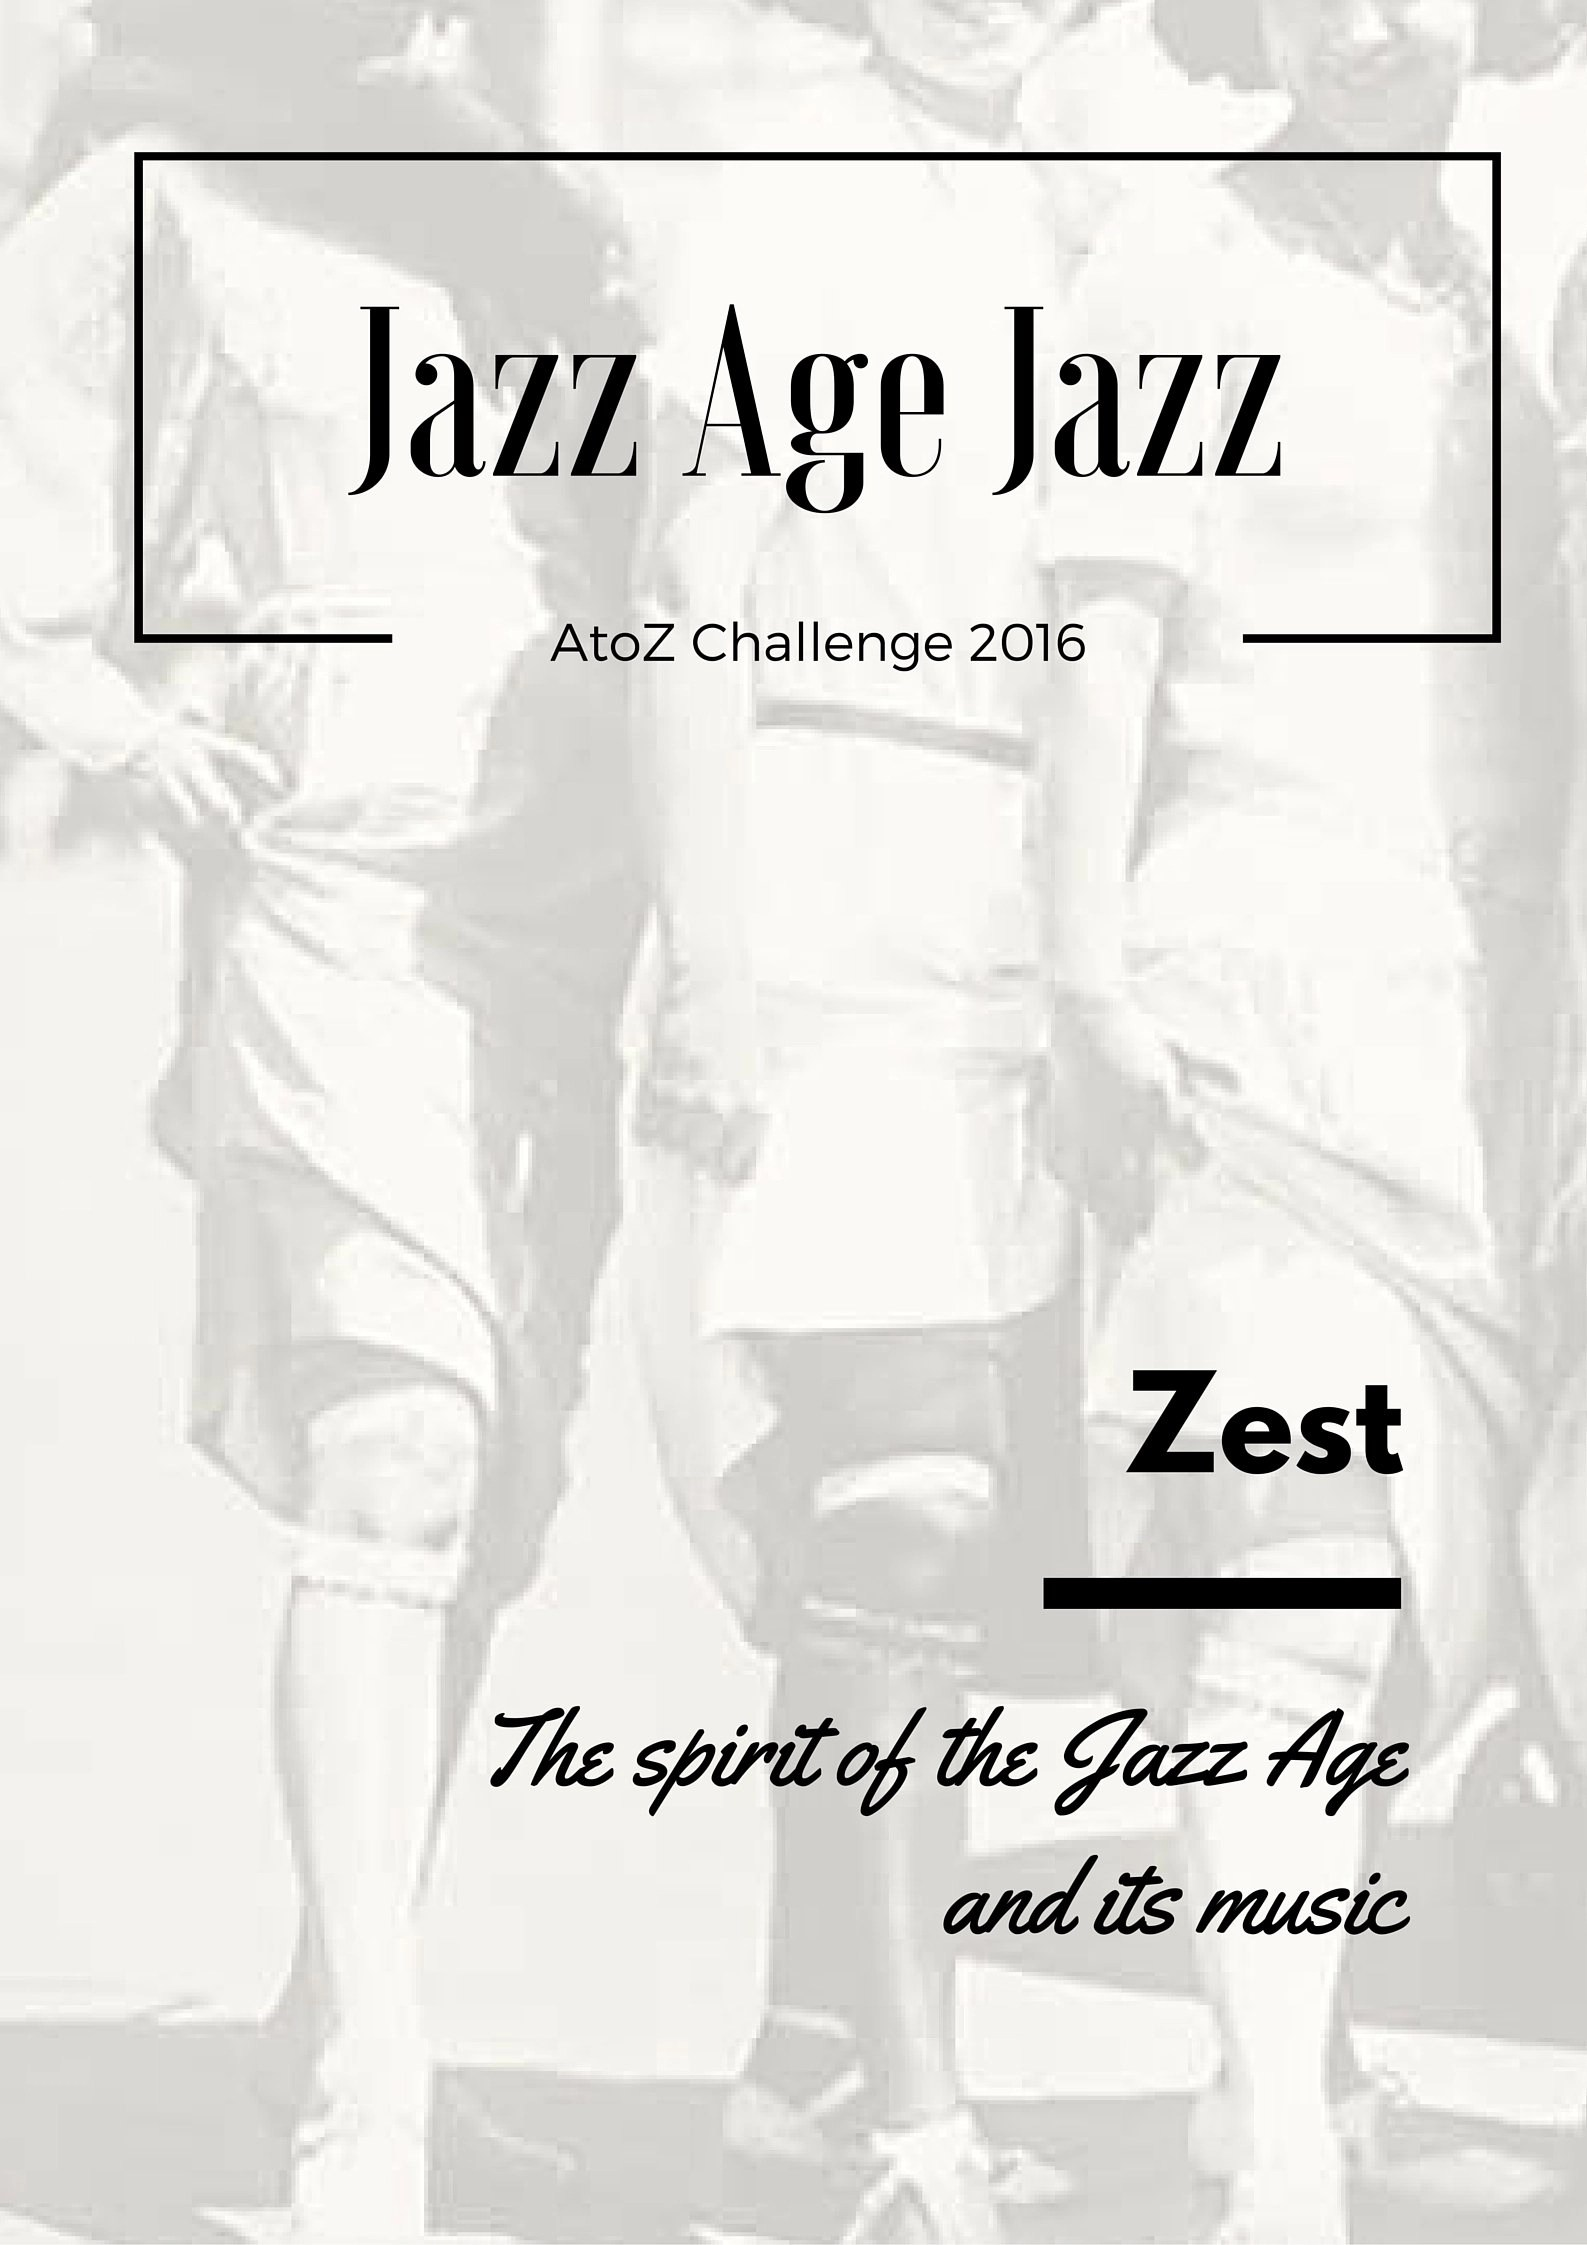 Jazz Age Jazz - Zest: the spirit of the Jazz Age and its music